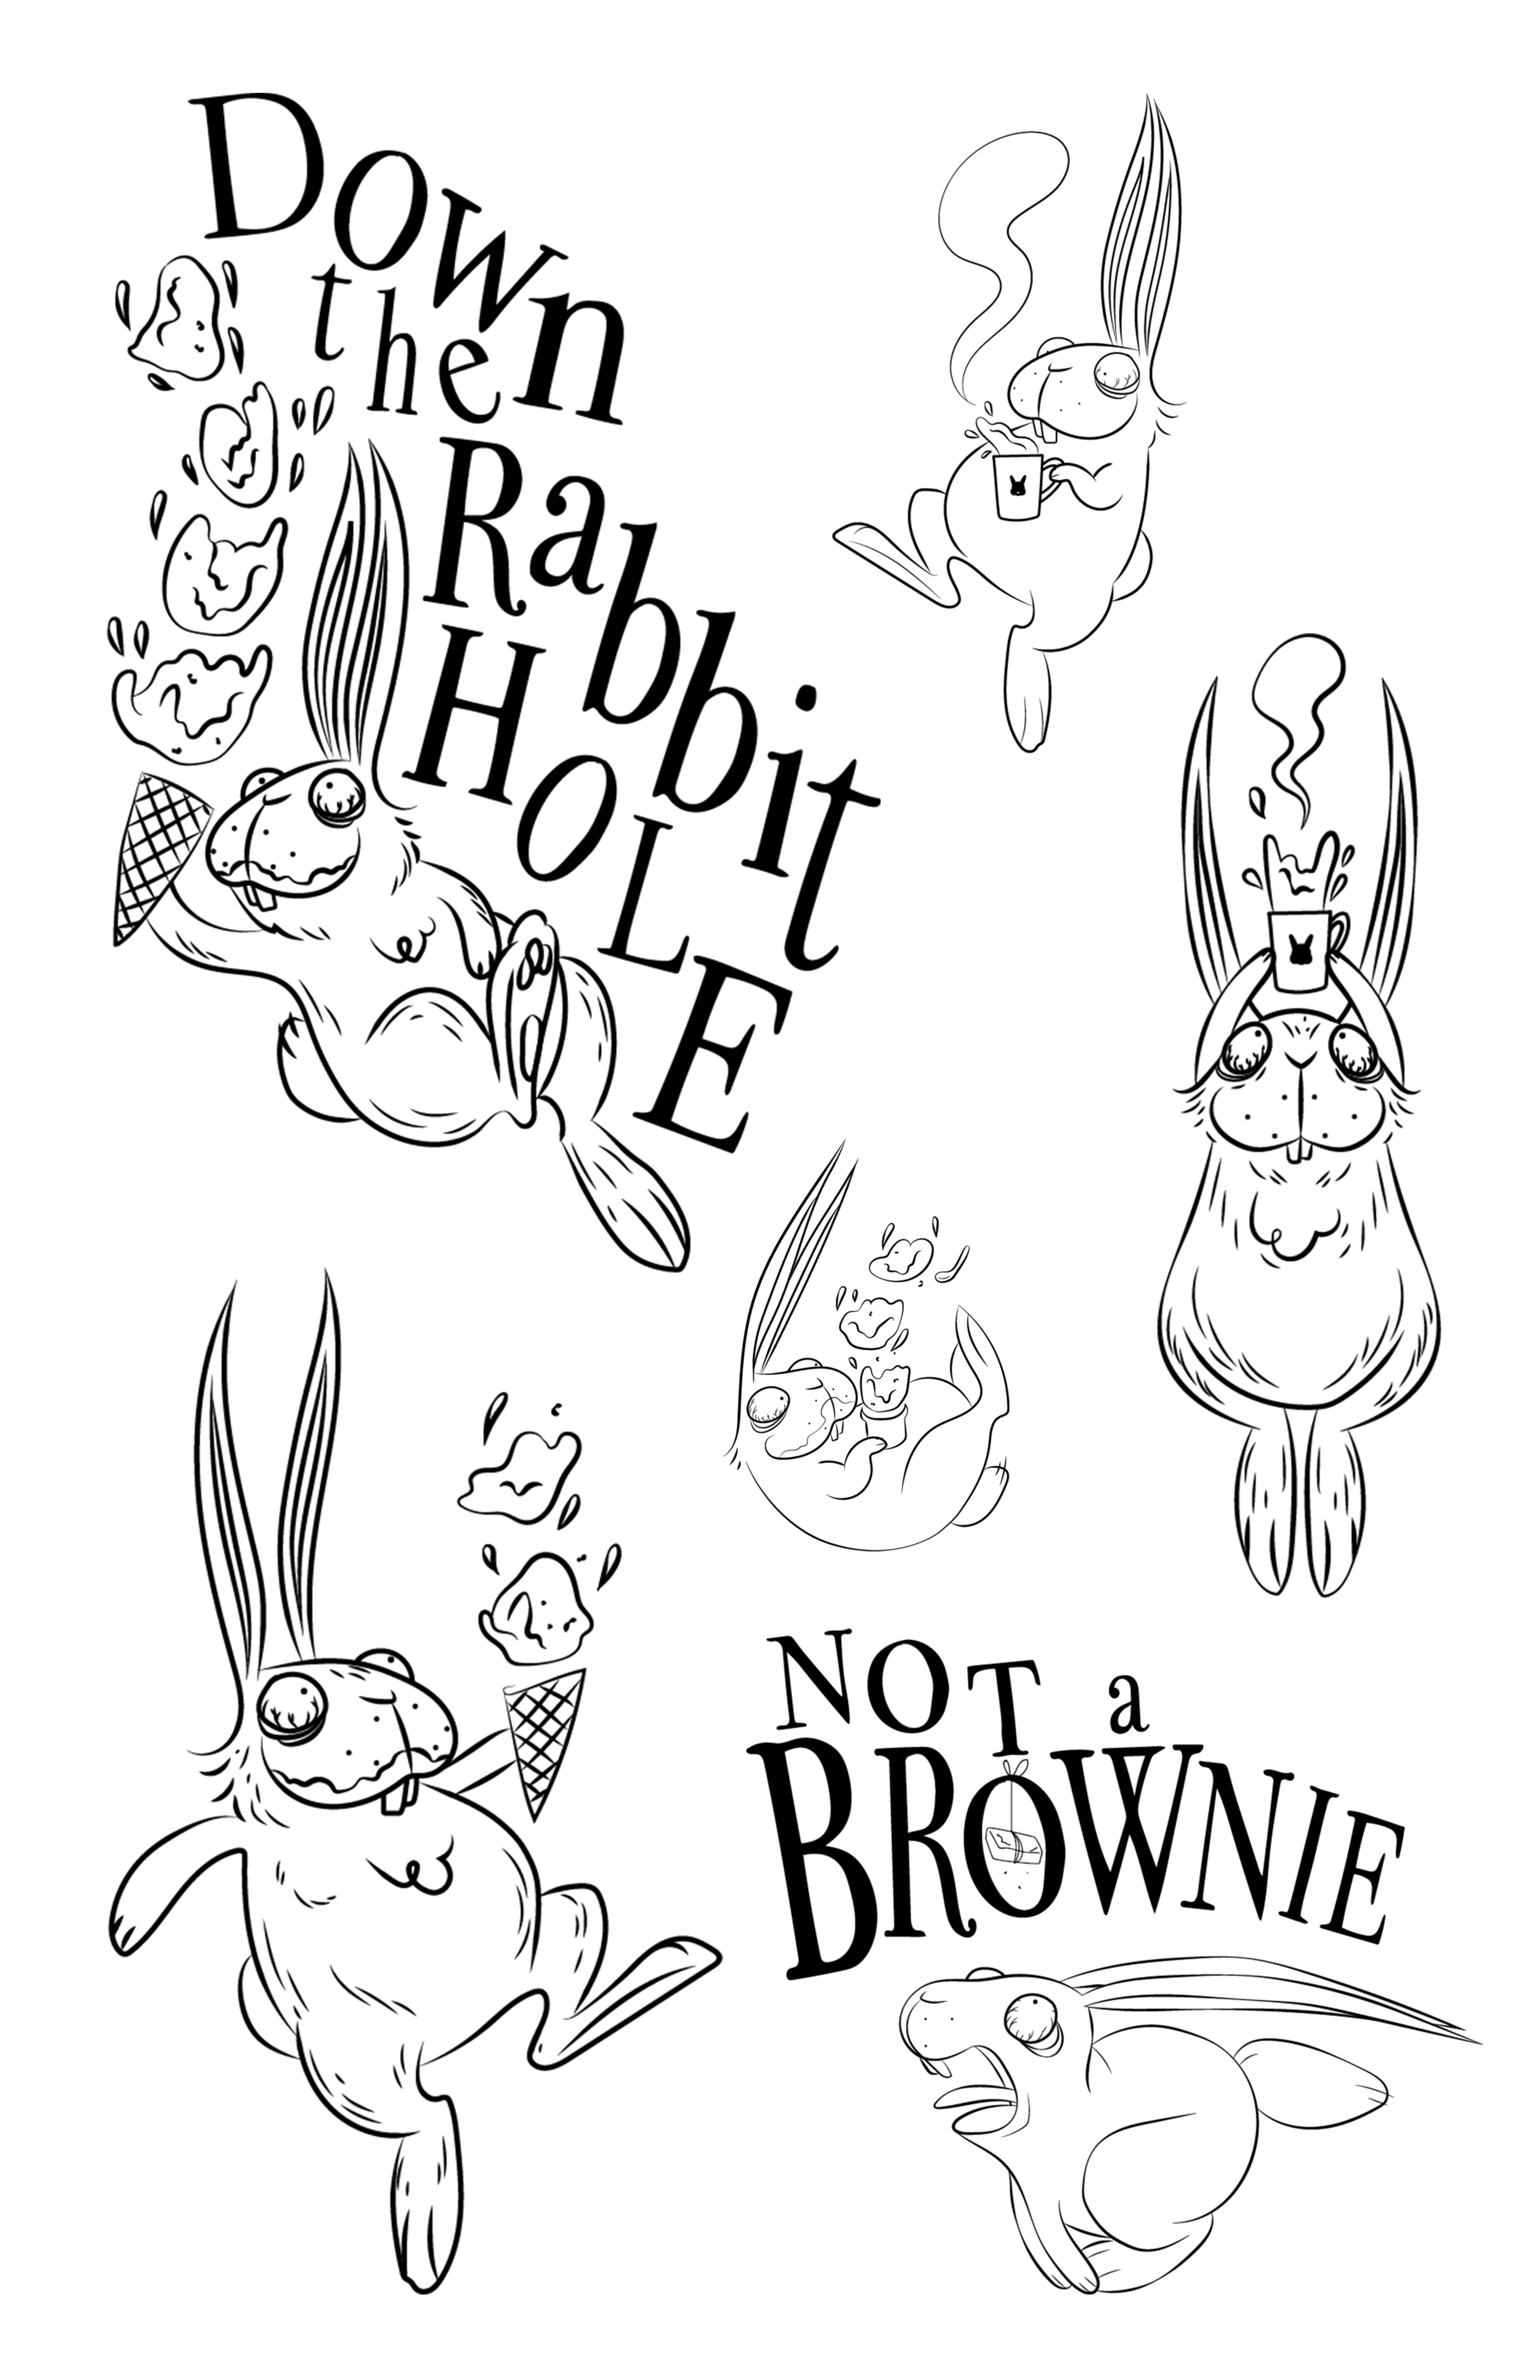 """These designs put a spotlight on the legacy of Bucky the Bunny. The illustrations feature a caffeine-crazed, sugar-high Bucky falling """"down the rabbit hole"""". I created an original serif typeface reminiscent of whimsical fairytales and quirky children's books. The result is a childlike, graphic depiction of Bucky's sweet addiction."""